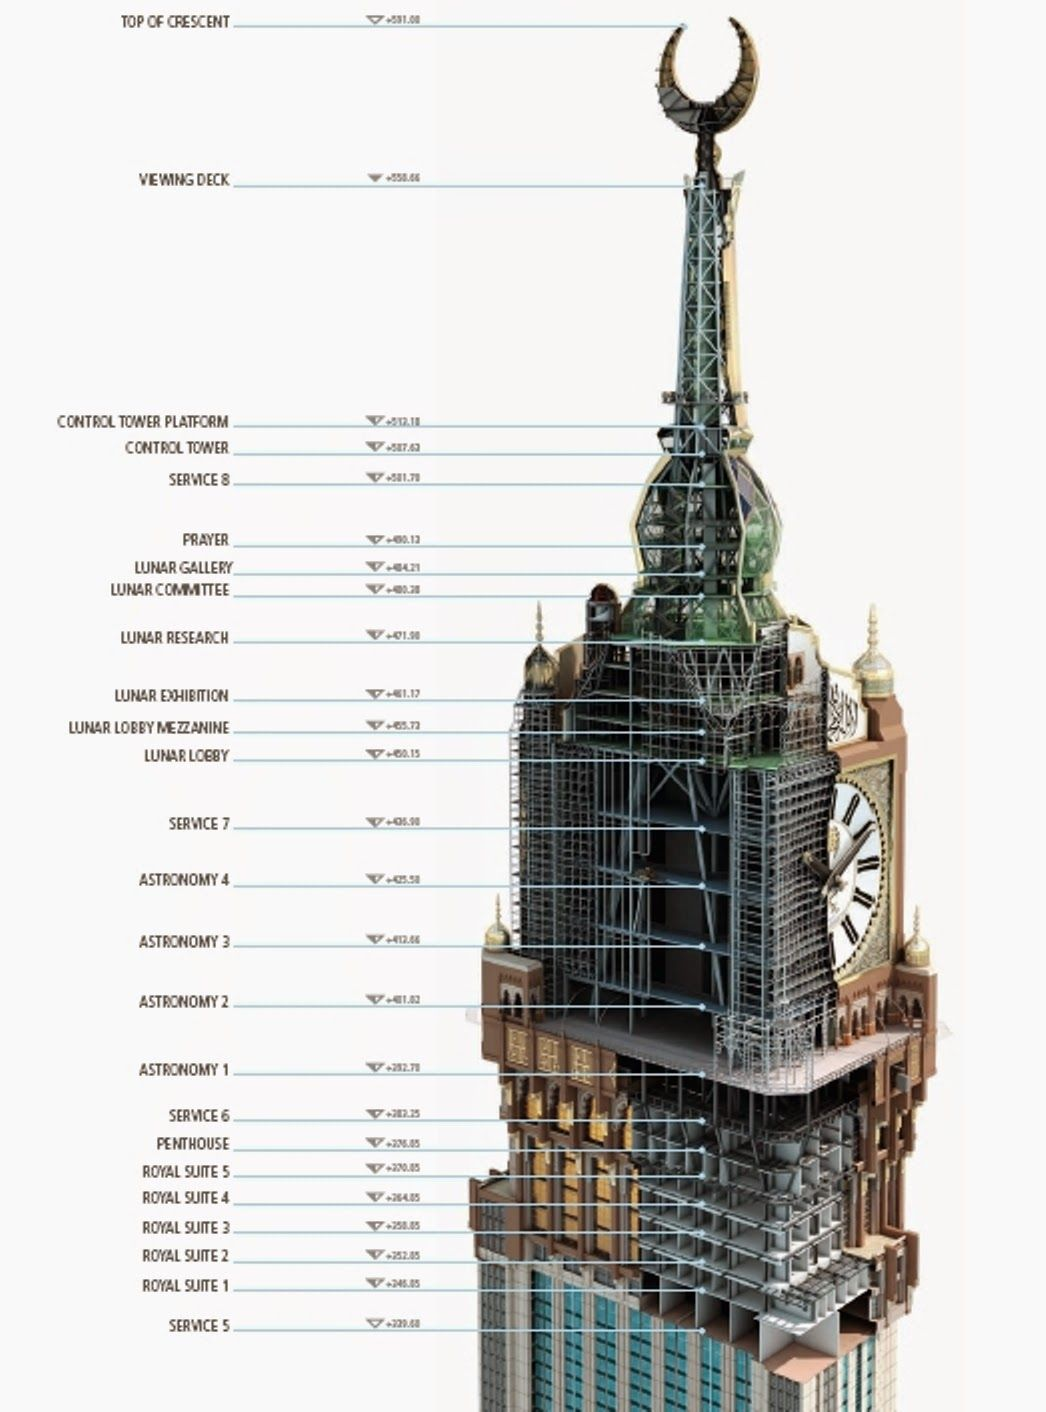 World S Second Tallest Tower Will Open For Visitors After Hajj Islamic Finder Delivering Articles Khutbas News And Views Tower Makkah Tower Mecca Hotel